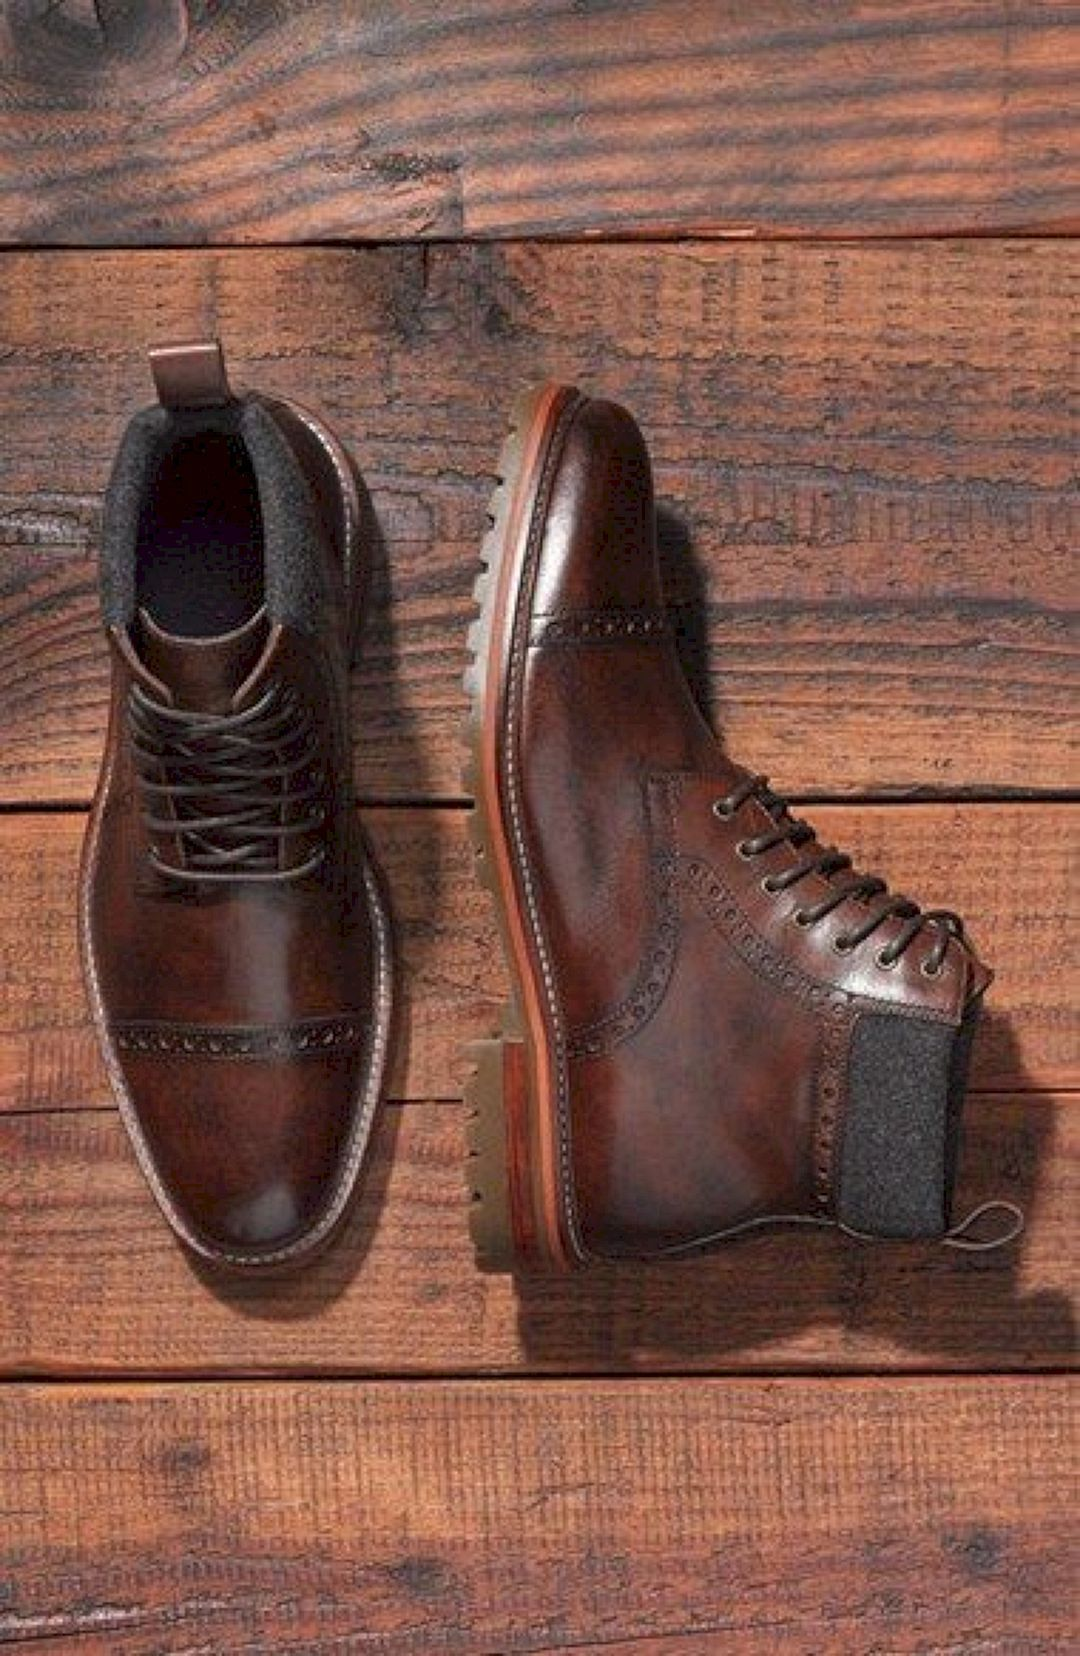 40+ Vintage and Rugged Men's Boots Style That You Can Buy Right Now